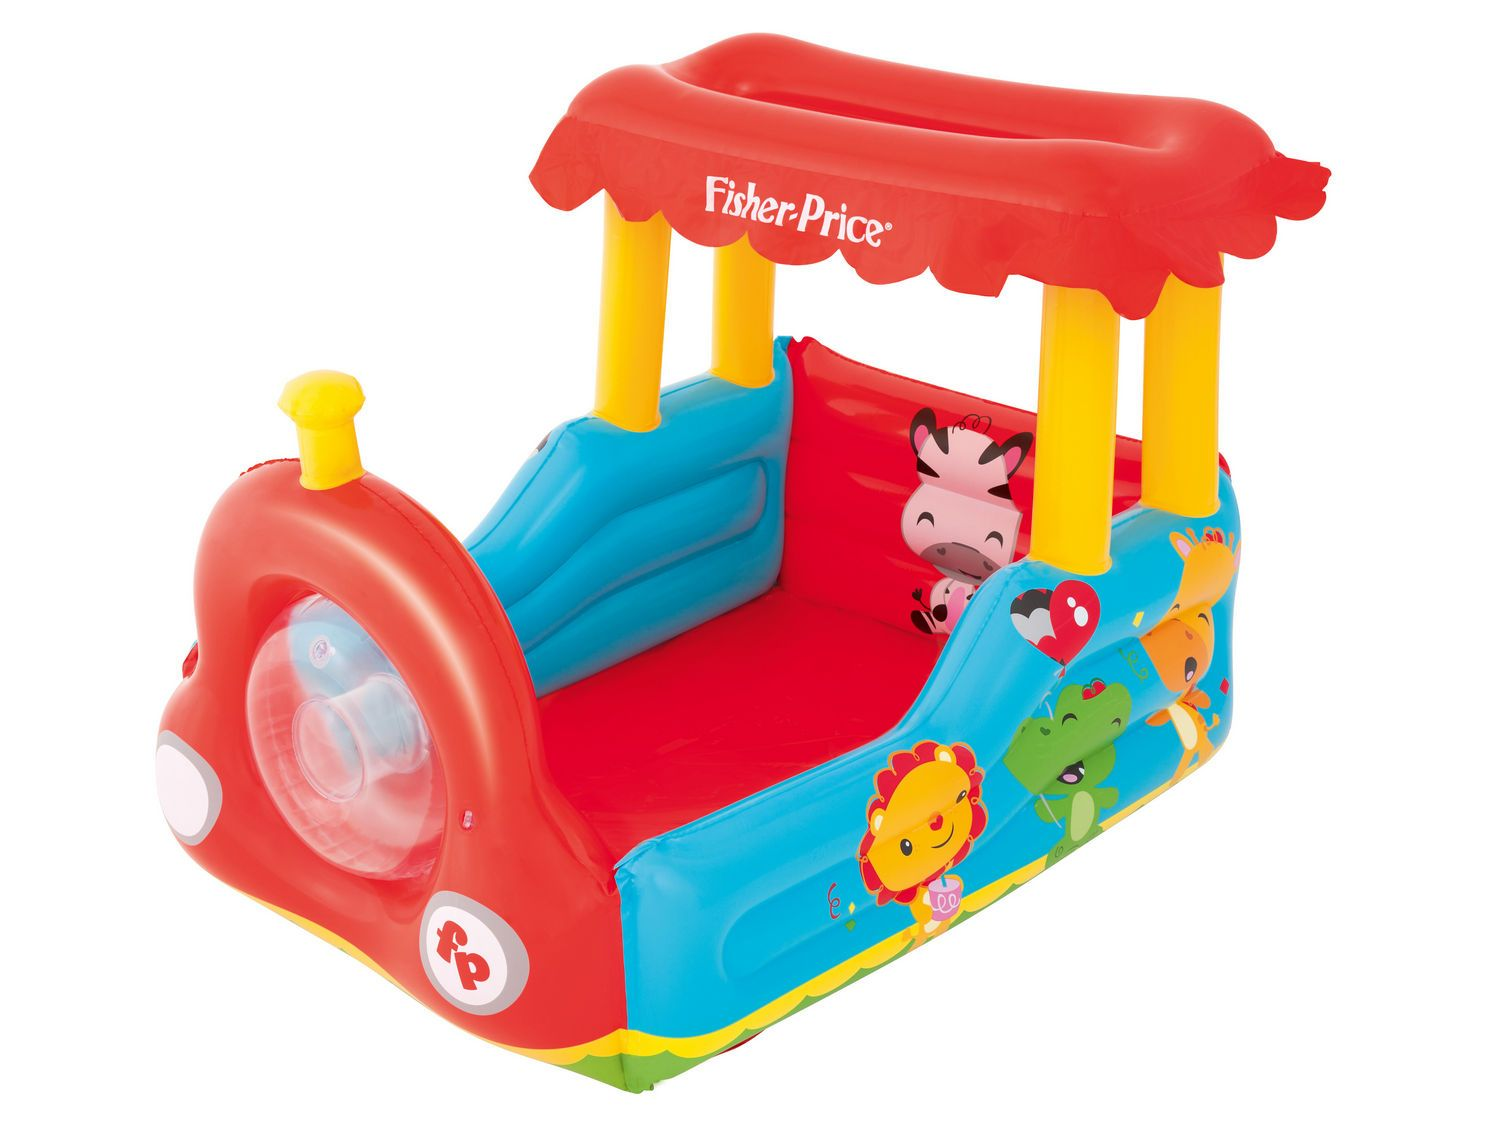 Bestway 93503 Fisher Price lokomotiva s 25 míčky